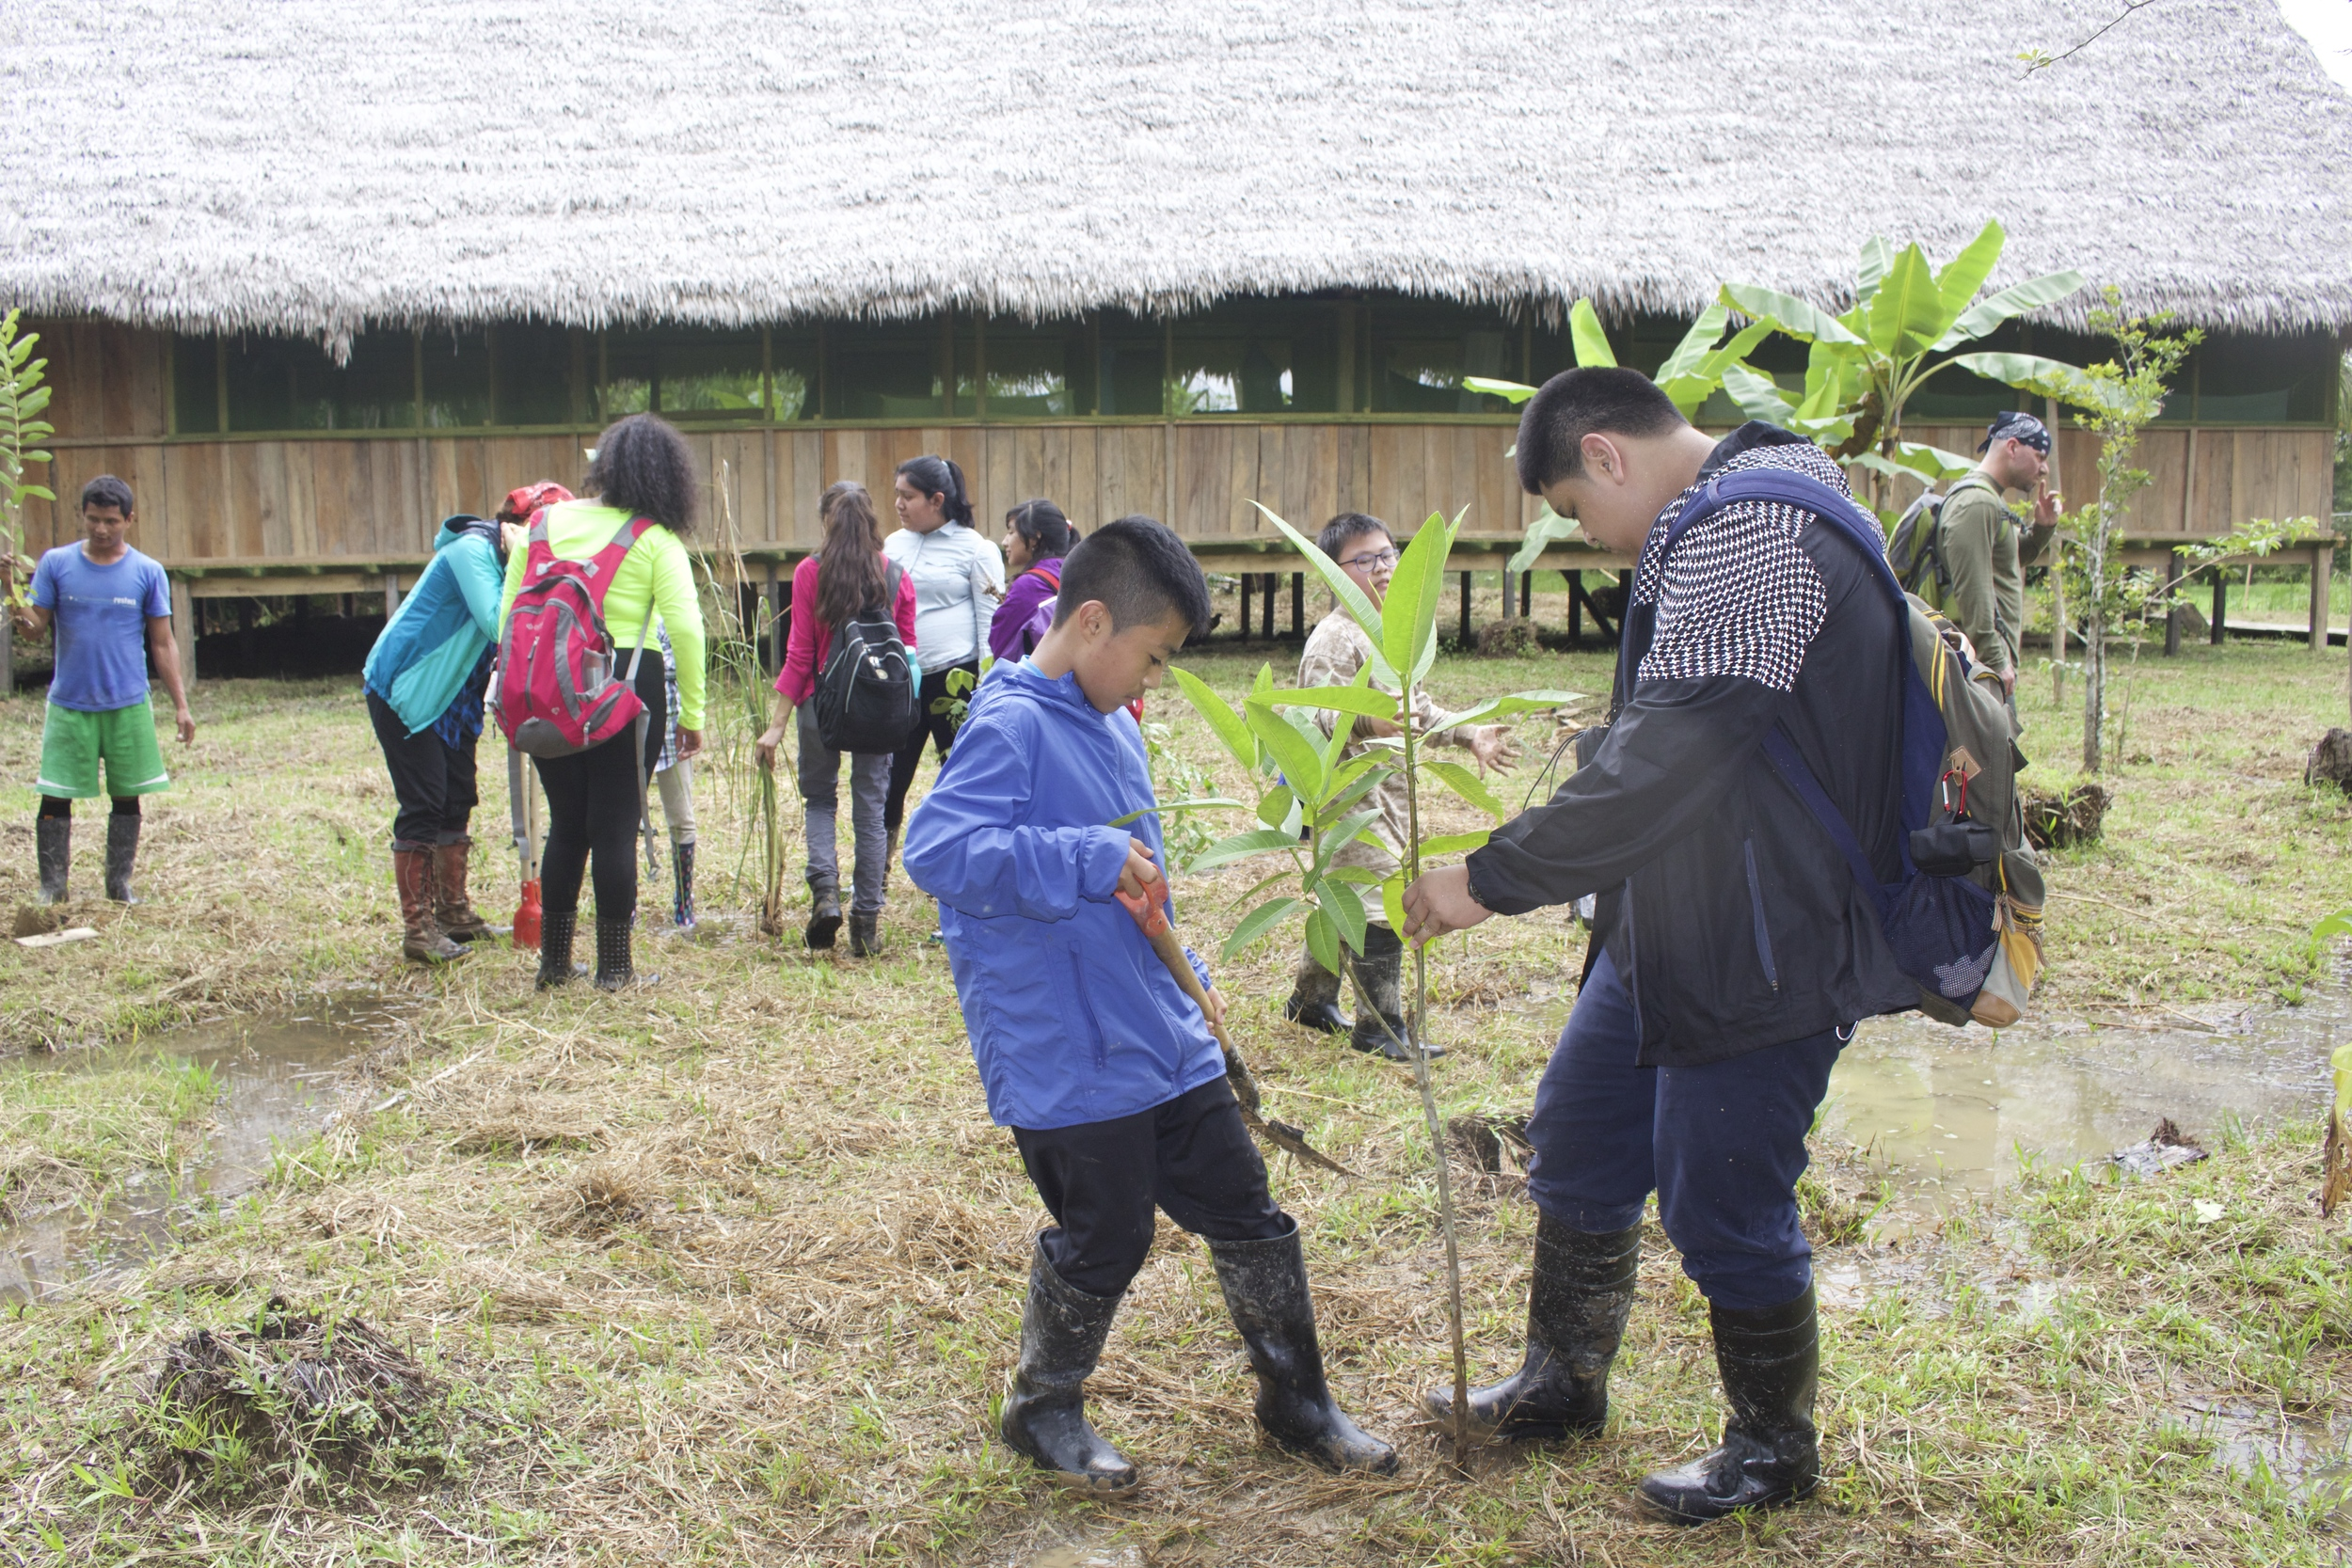 Digging holes for the fruit trees and medicinal plants